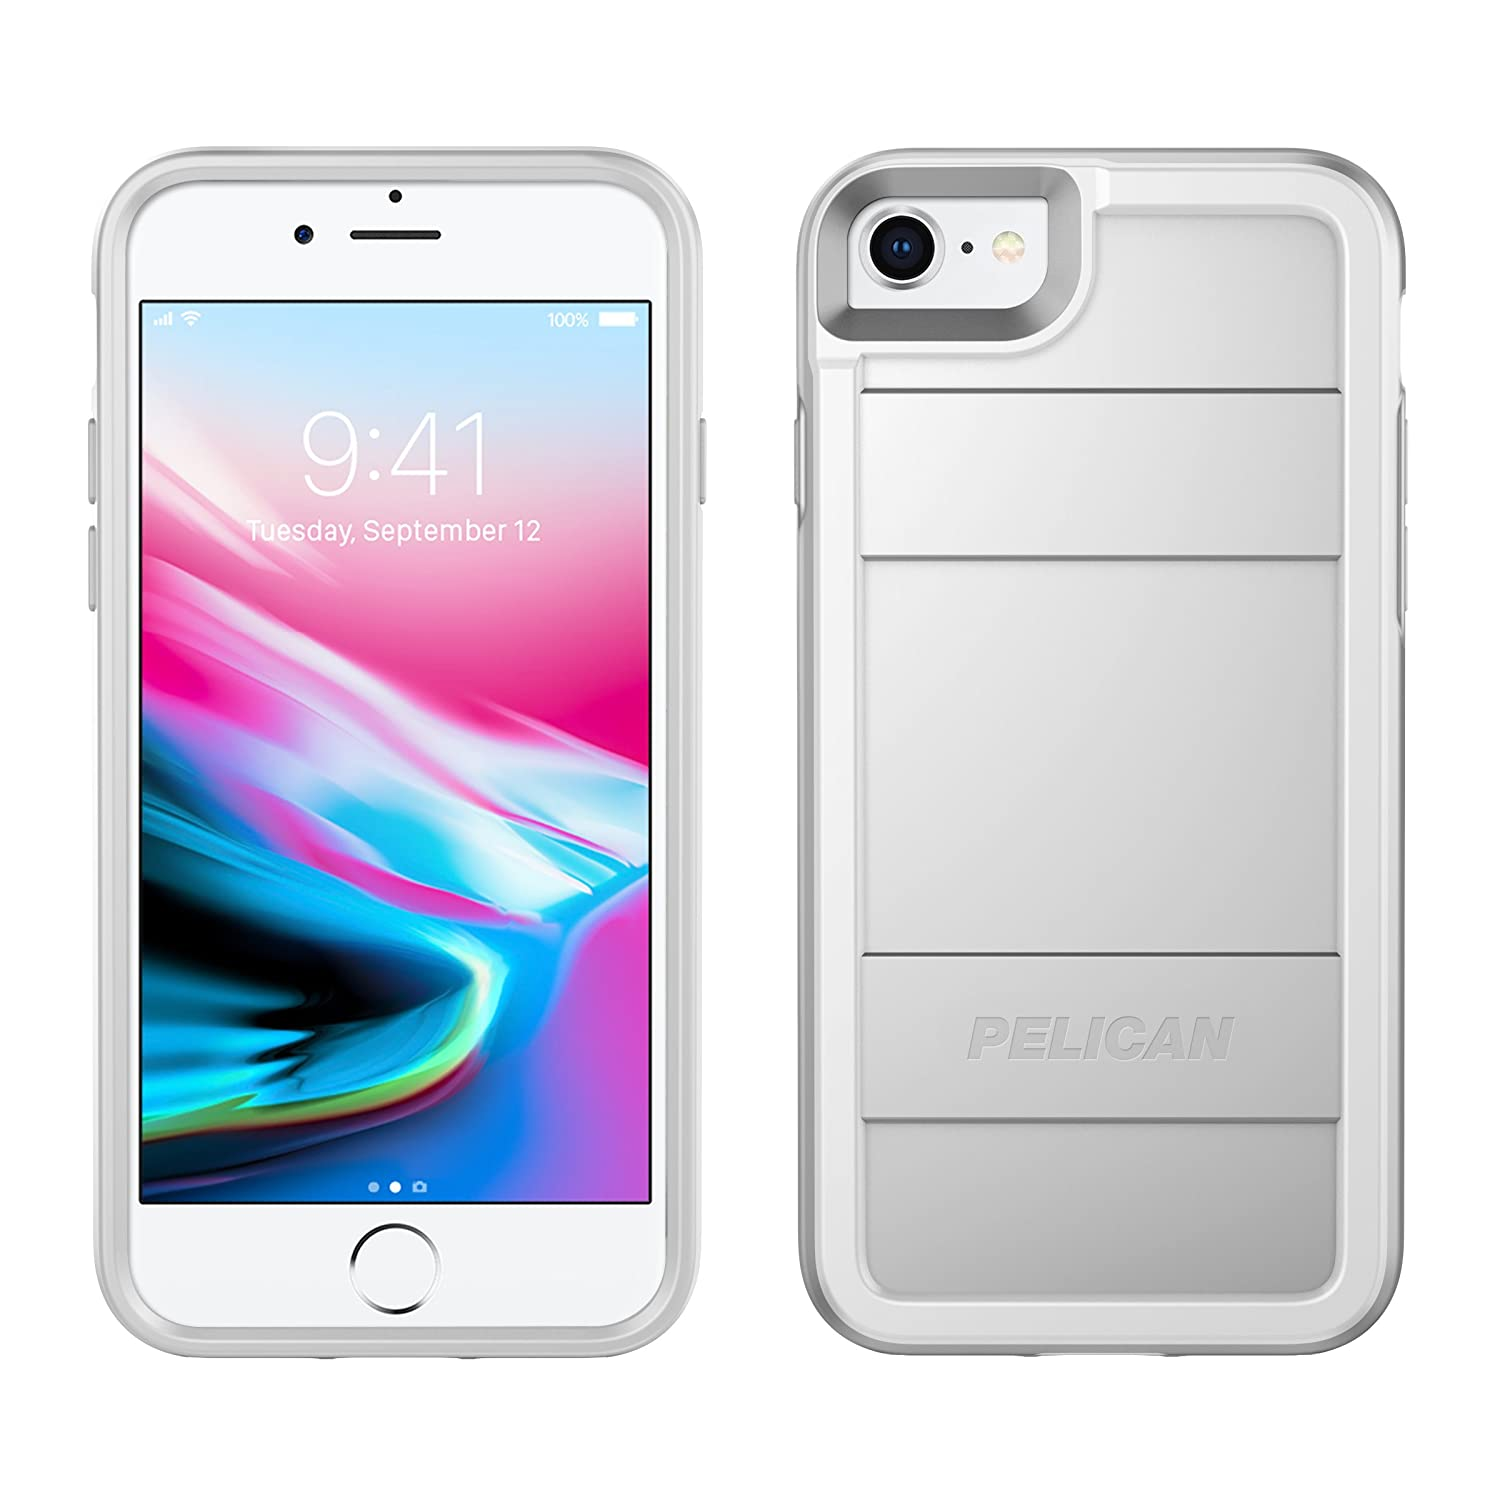 iPhone 8 Case | Pelican Protector Case - fits iPhone 6/6s/7/8 (Metallic Silver)